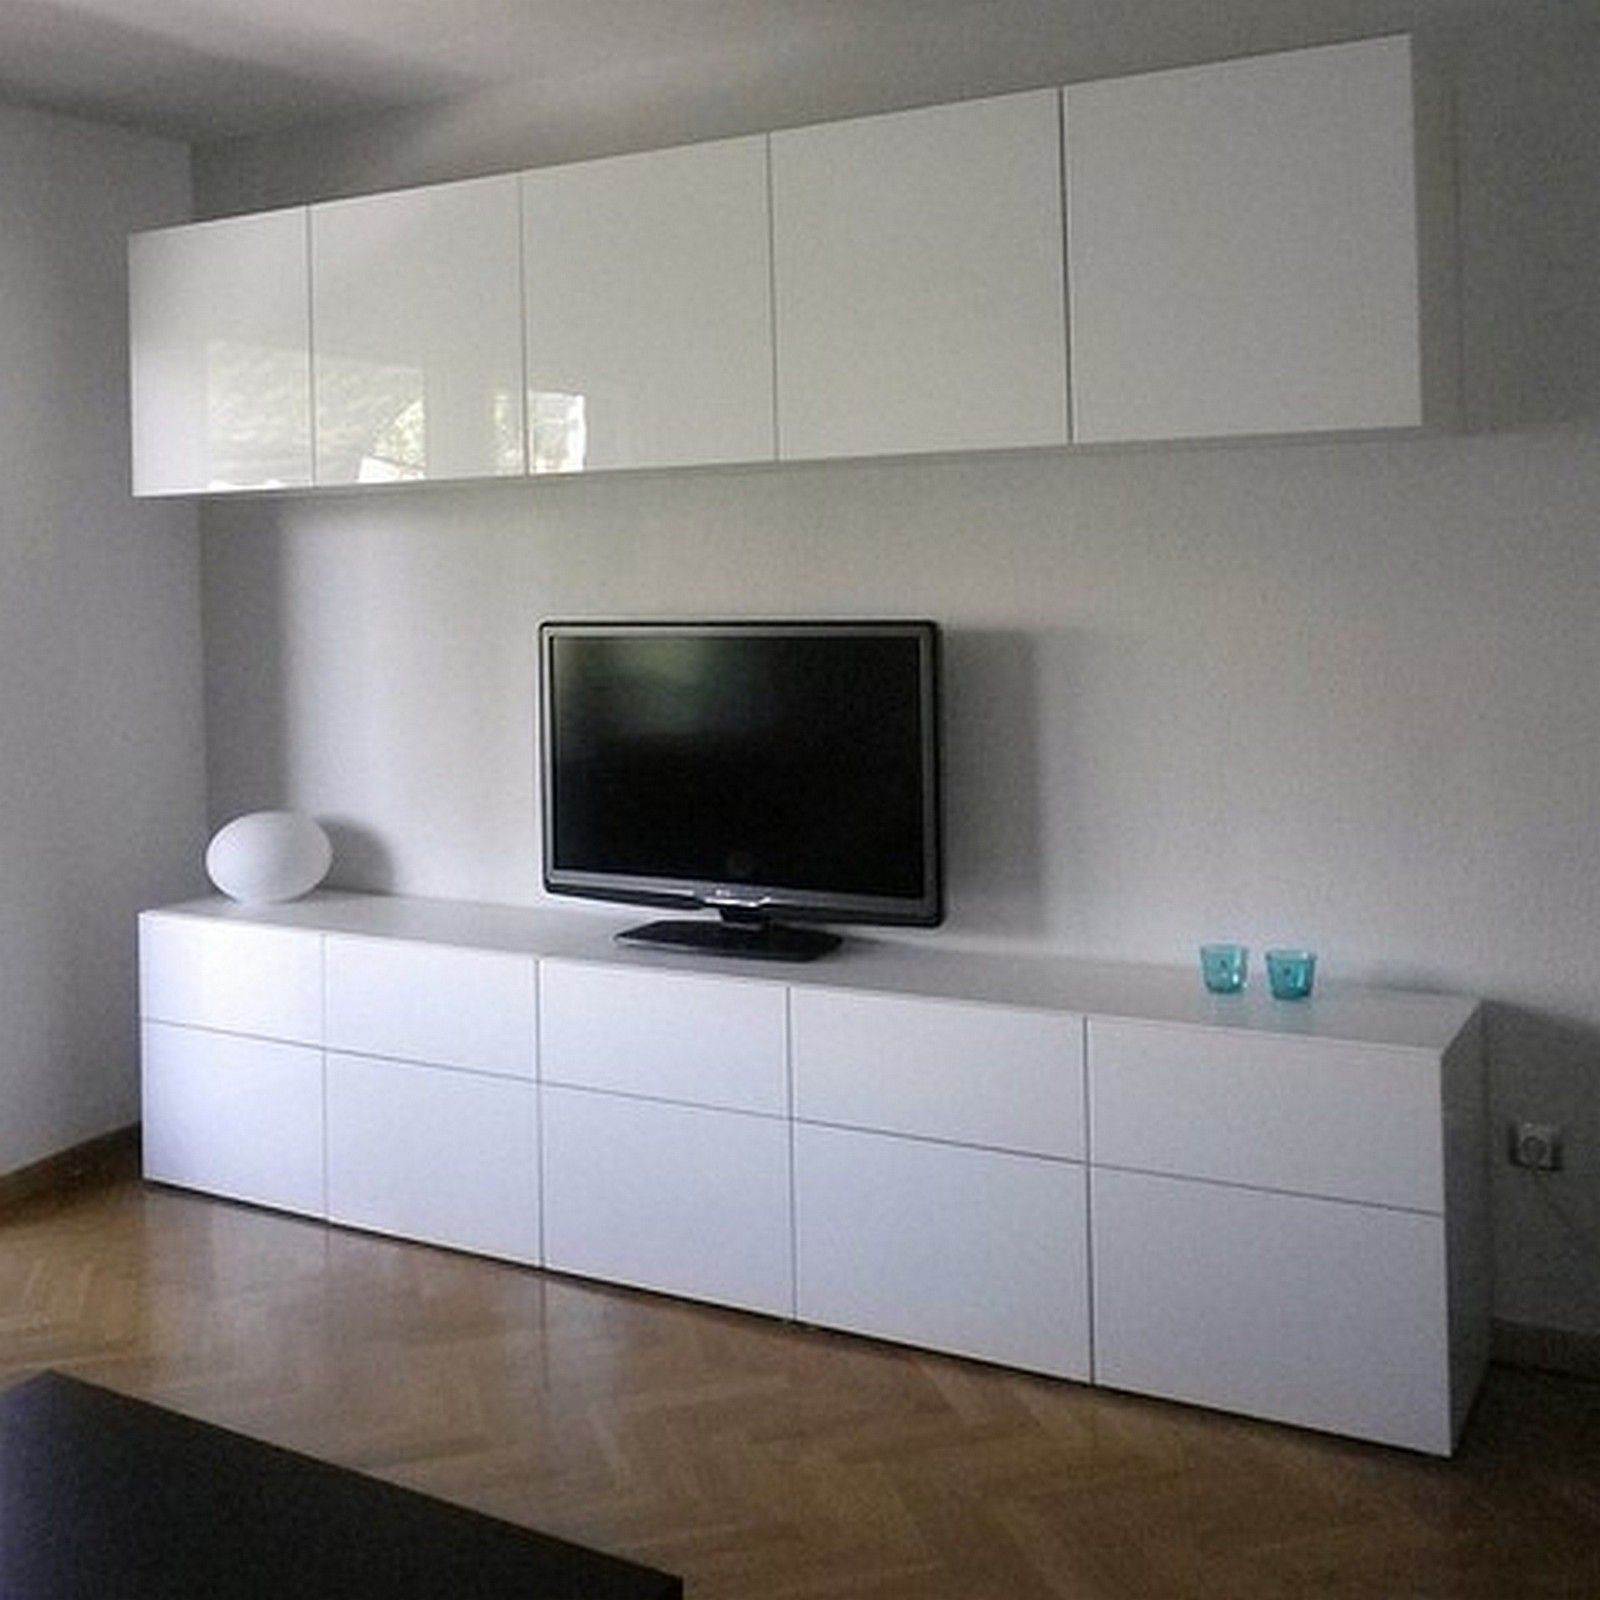 ikea besta cabinets with high gloss doors in living room home pinterest wohnzimmer harfe. Black Bedroom Furniture Sets. Home Design Ideas